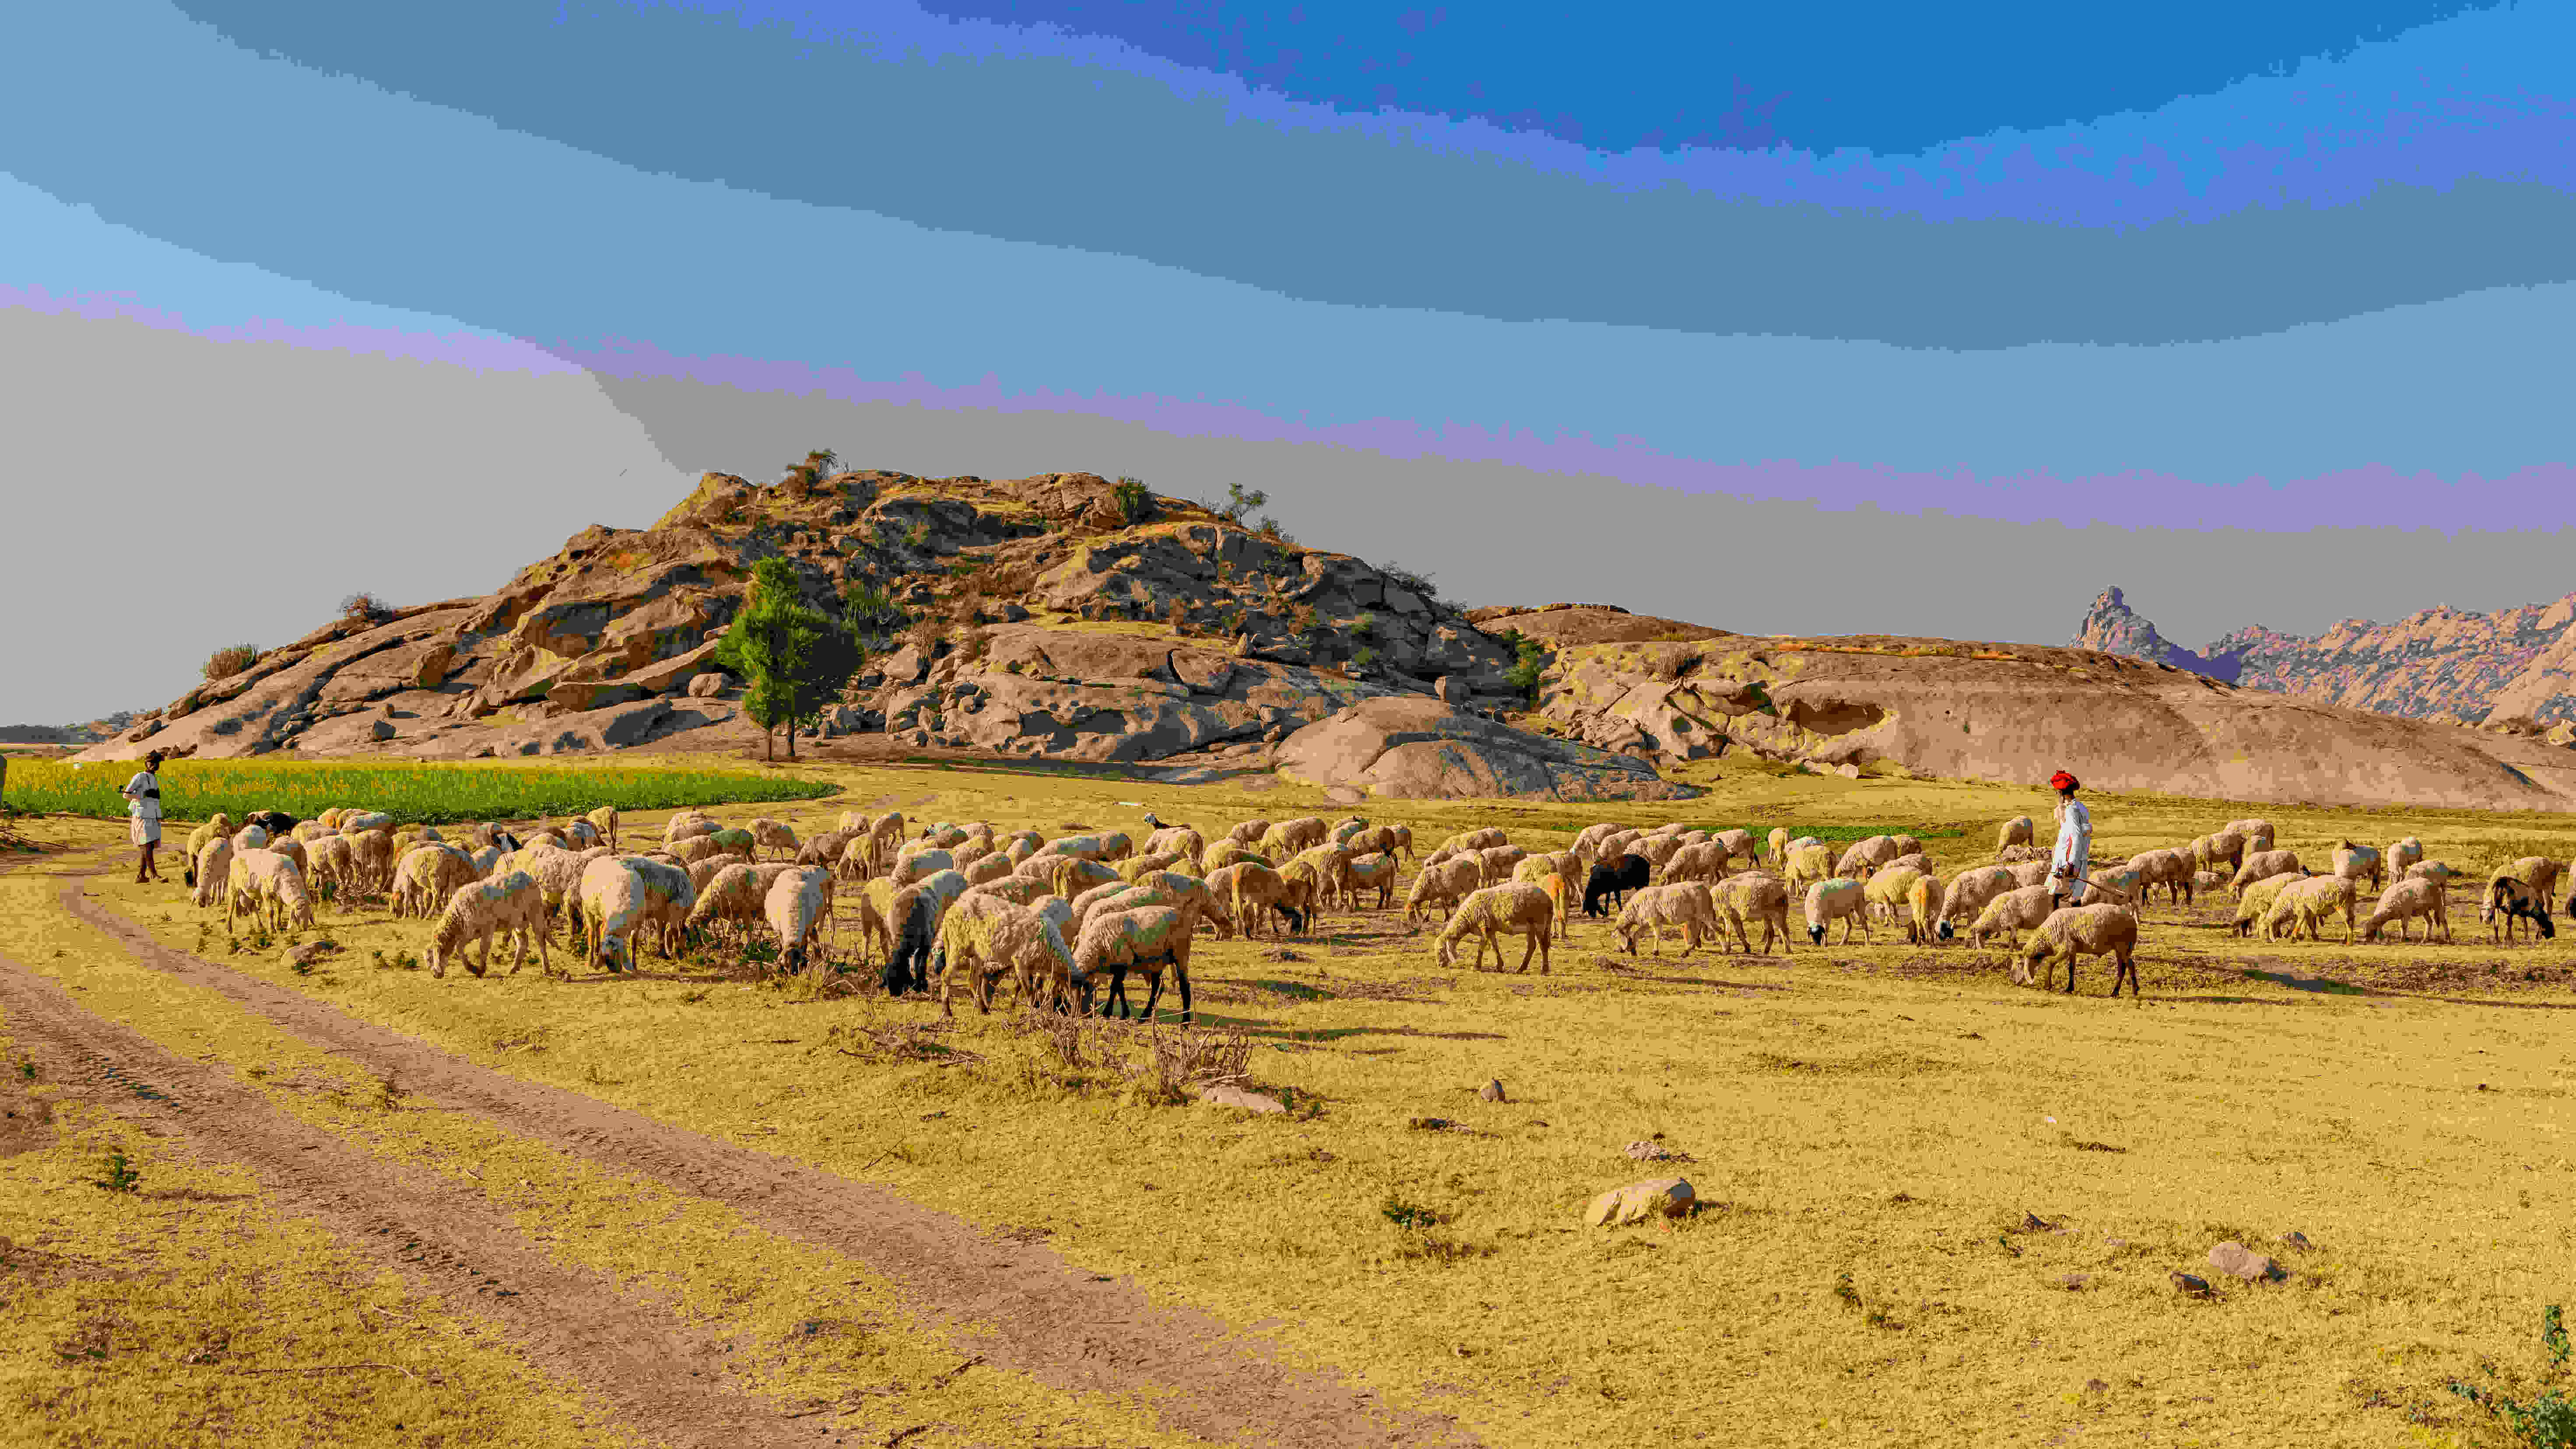 In India, pastoralists are estimated to number 13 million, forming 1 per cent of the total population.